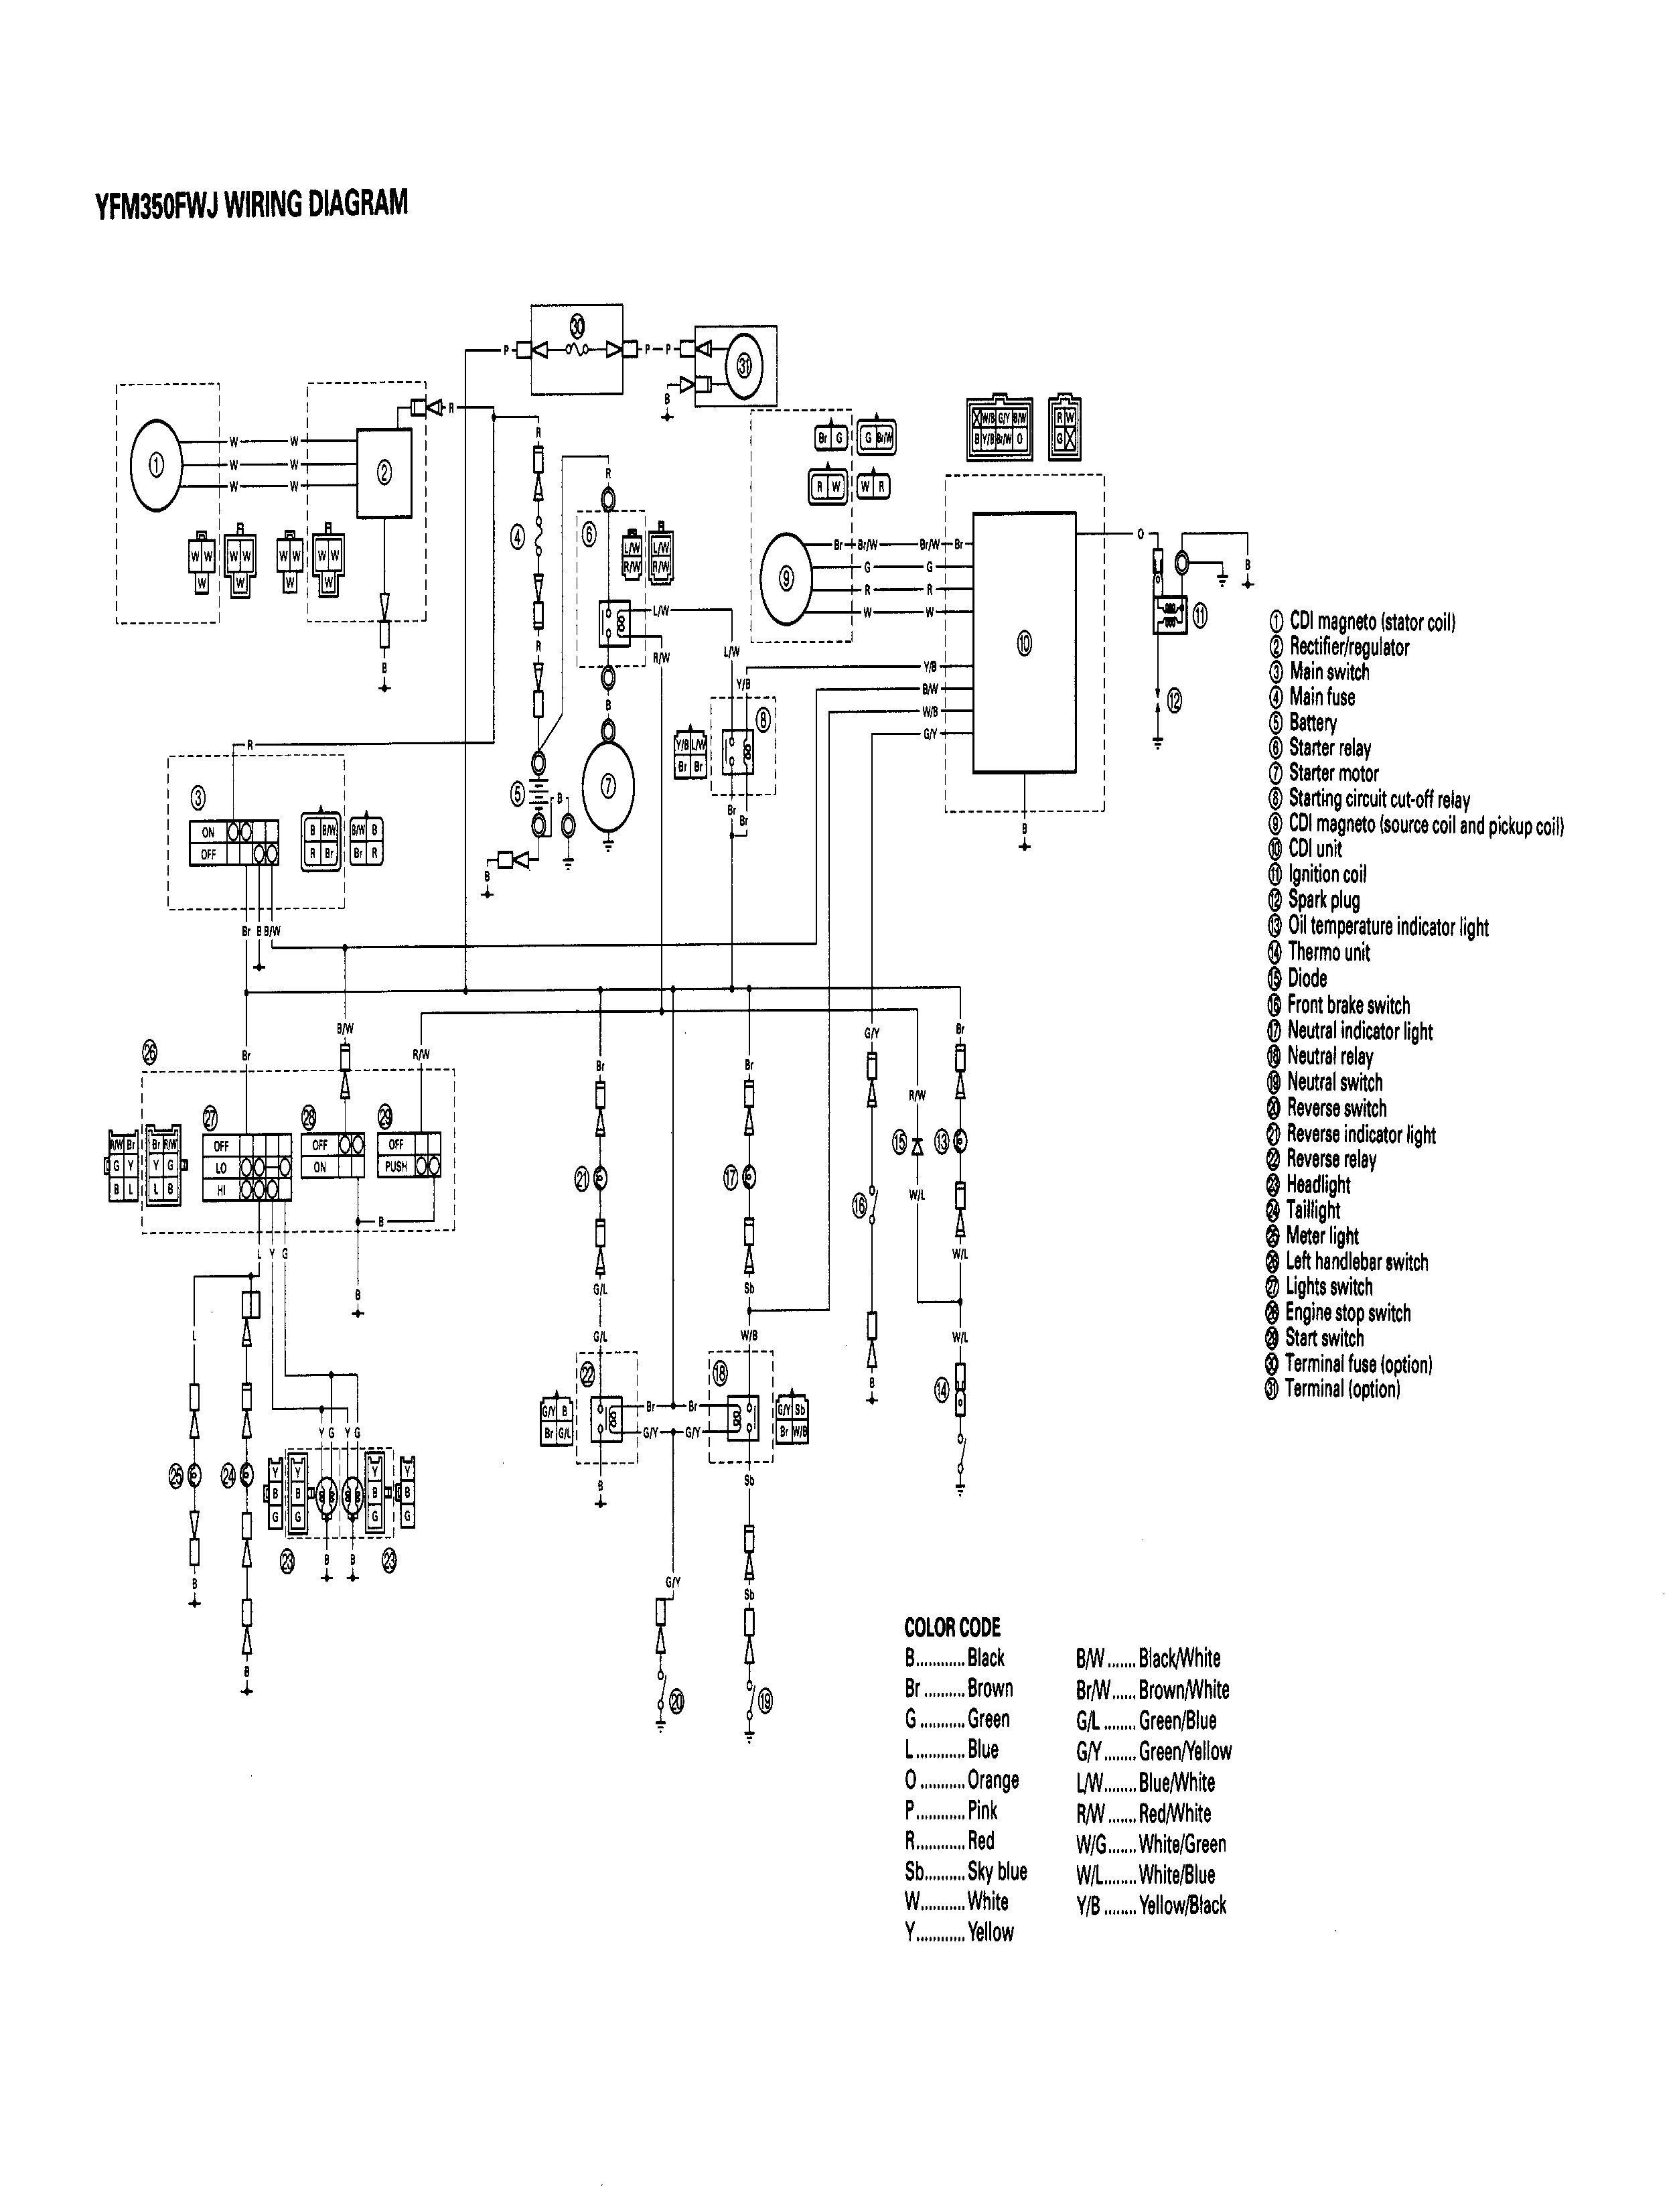 [DIAGRAM_1CA]  ✦DIAGRAM BASED✦ Yamaha Wolverine 350 Ignition Wiring Diagram COMPLETED  DIAGRAM BASE Wiring Diagram -  KELLY.WILLIAMS.BROWN.3WAYSWITCHWIRINGDIAGRAM.PCINFORMI.IT | Caltric Wiring Diagram |  | Diagram Based Completed Edition - PcInformi